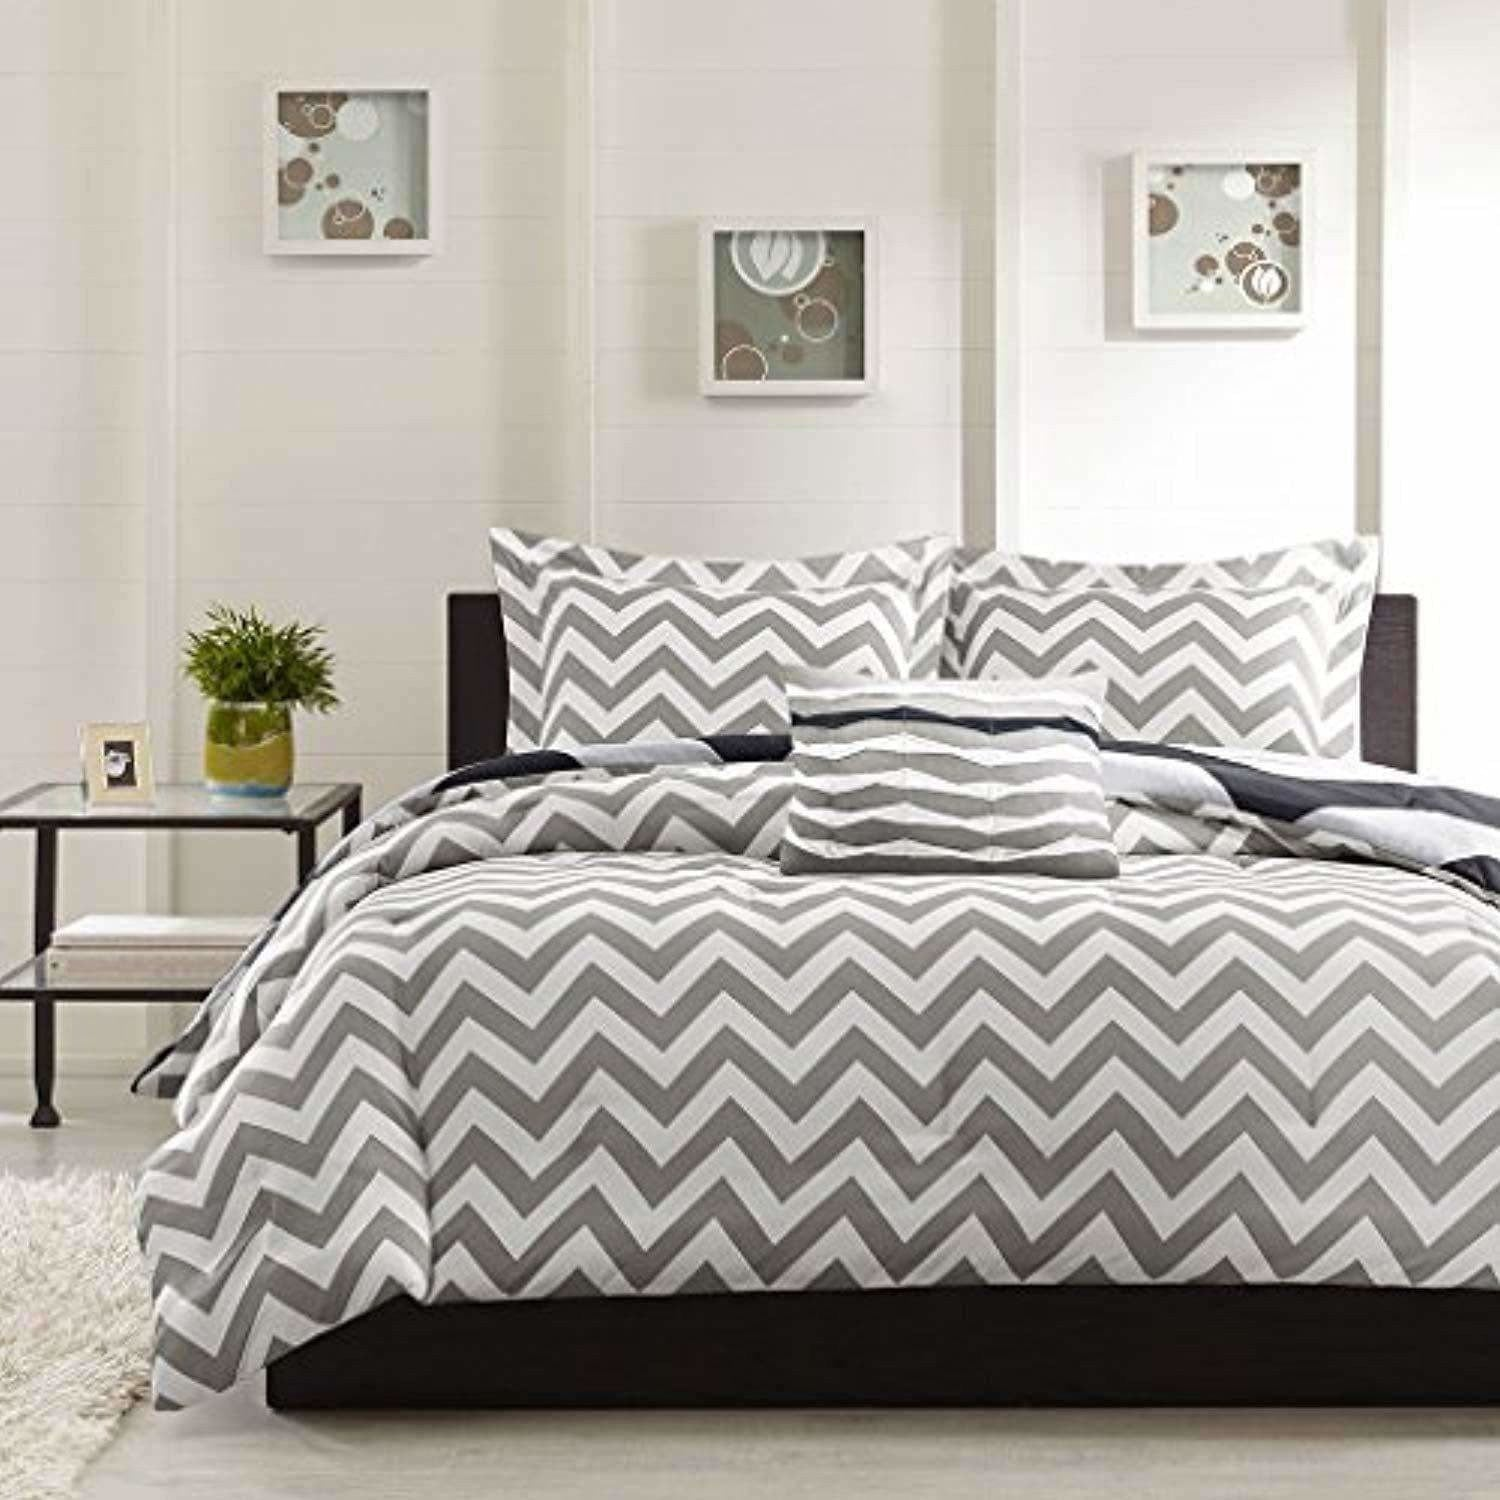 Cotton Double Bedsheet with 2 Pillow Covers - Modern White and Grey